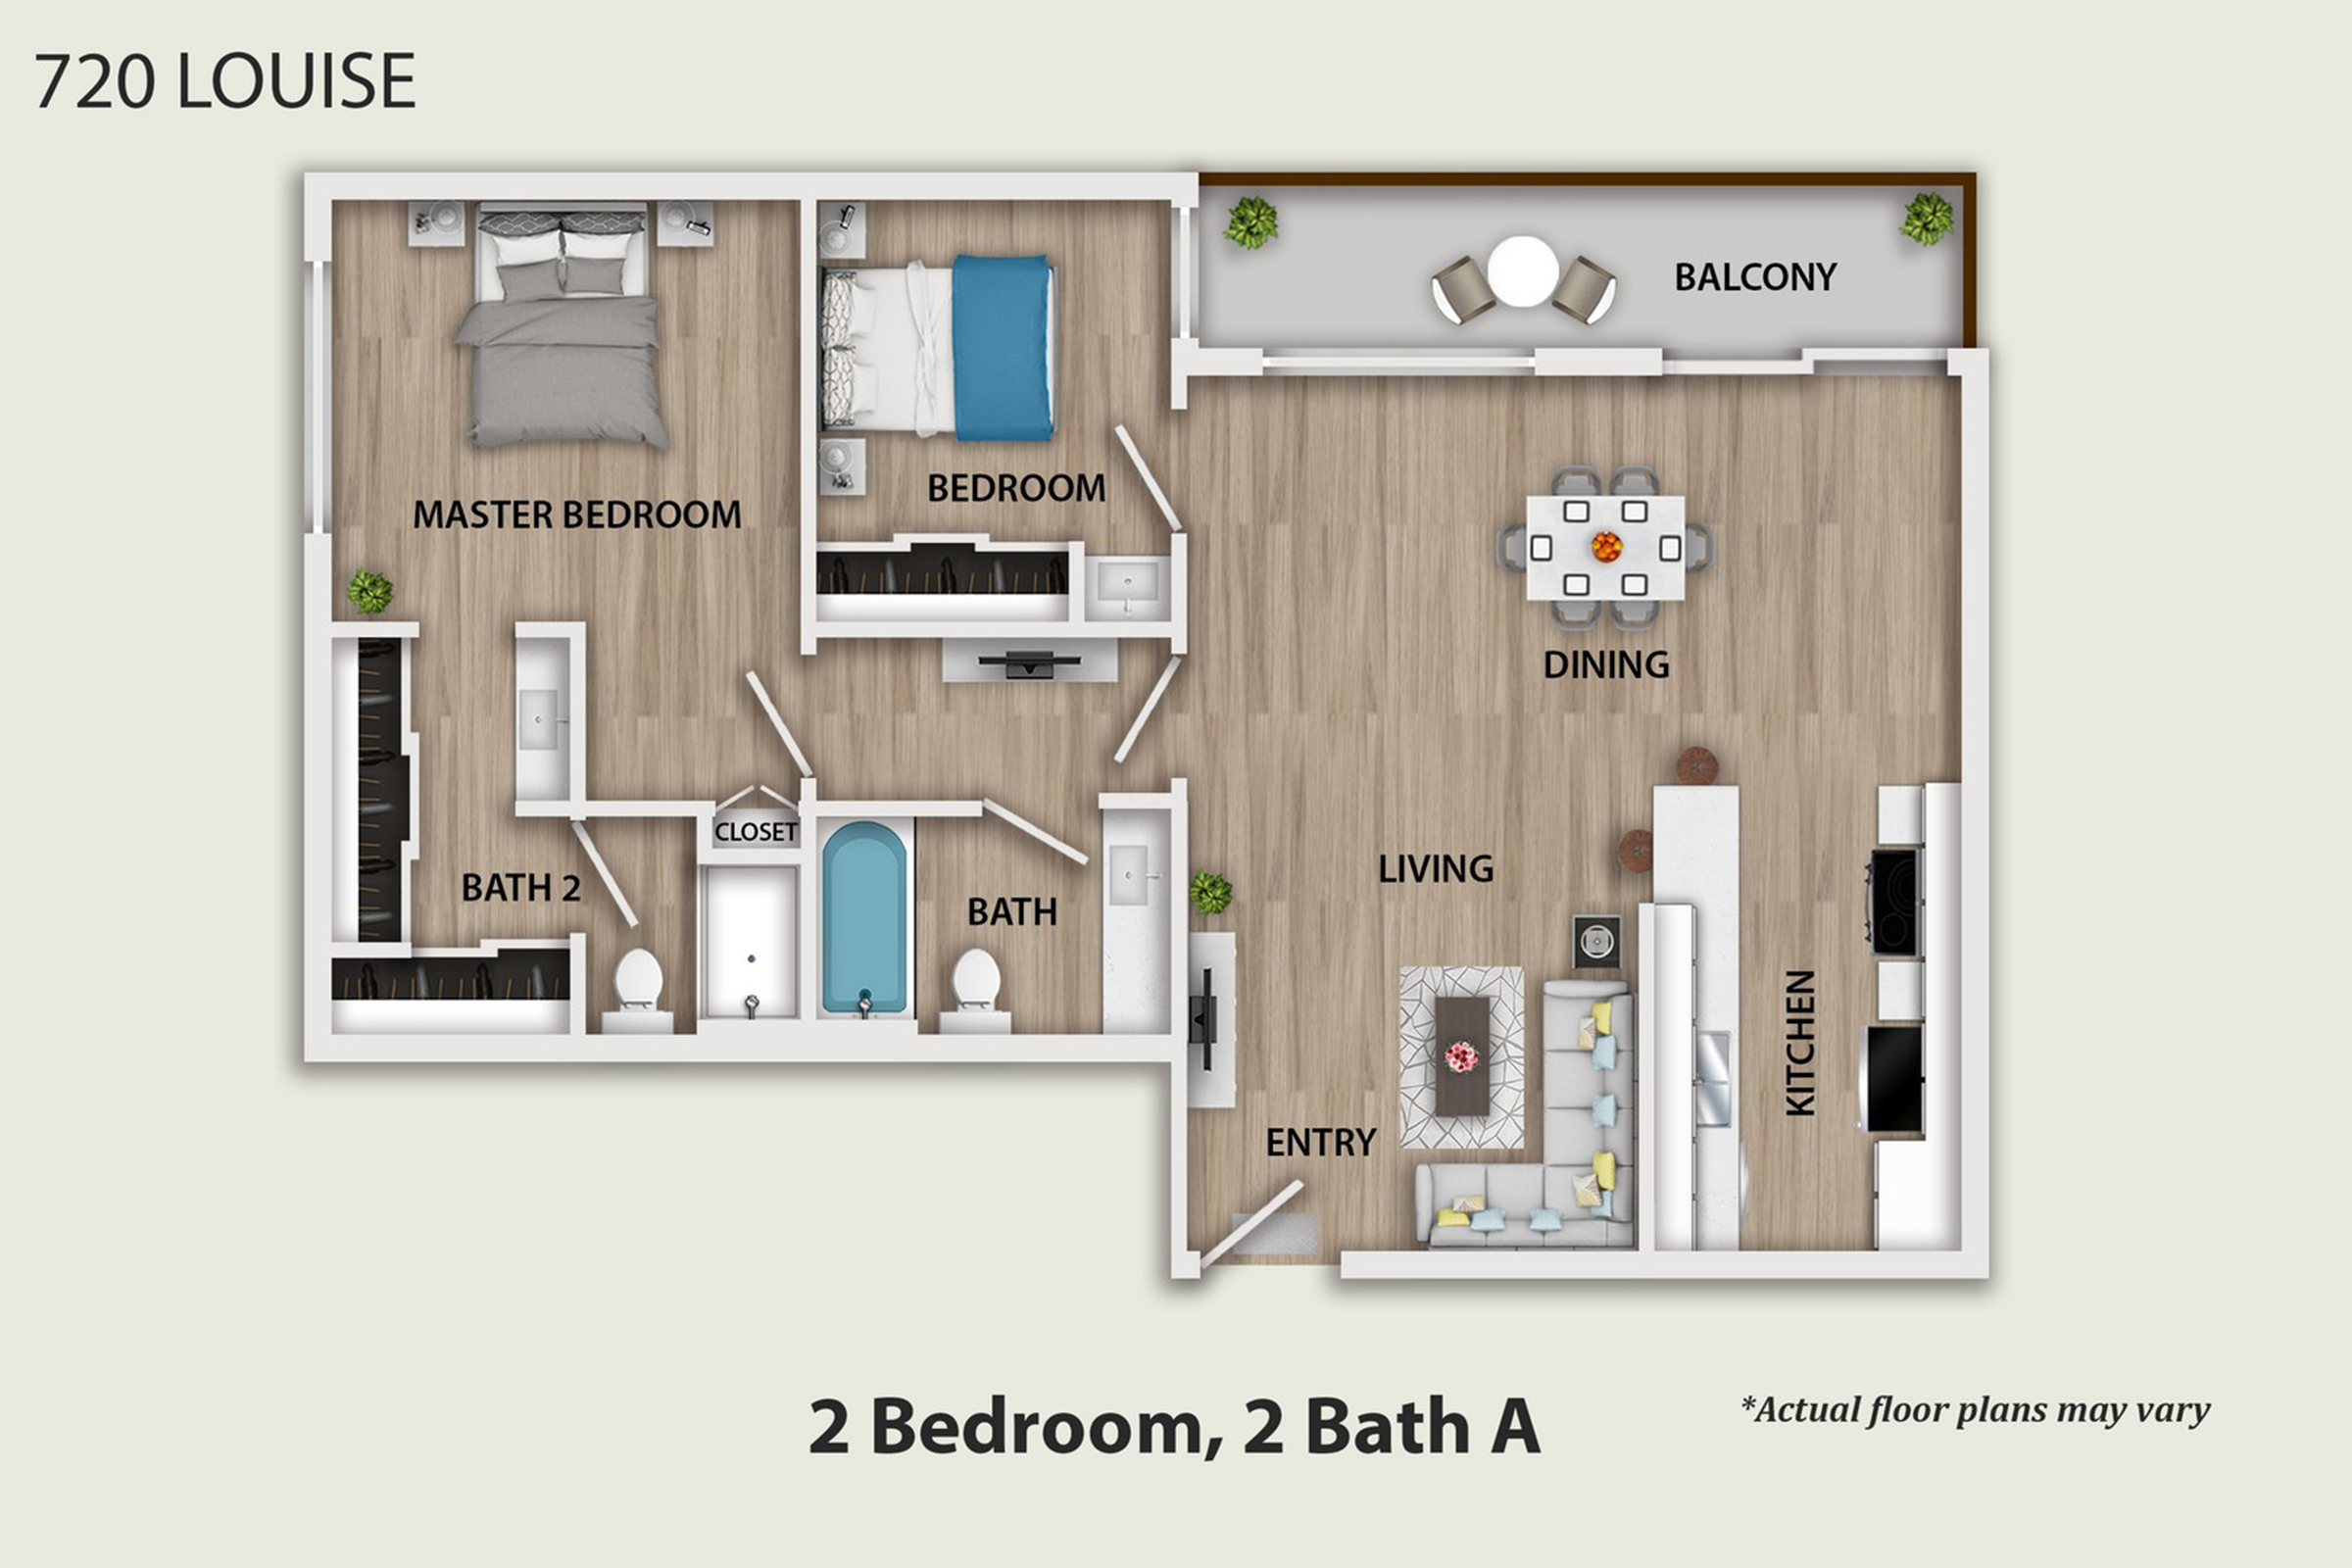 Two bedrooms for rent in Glendale, CA